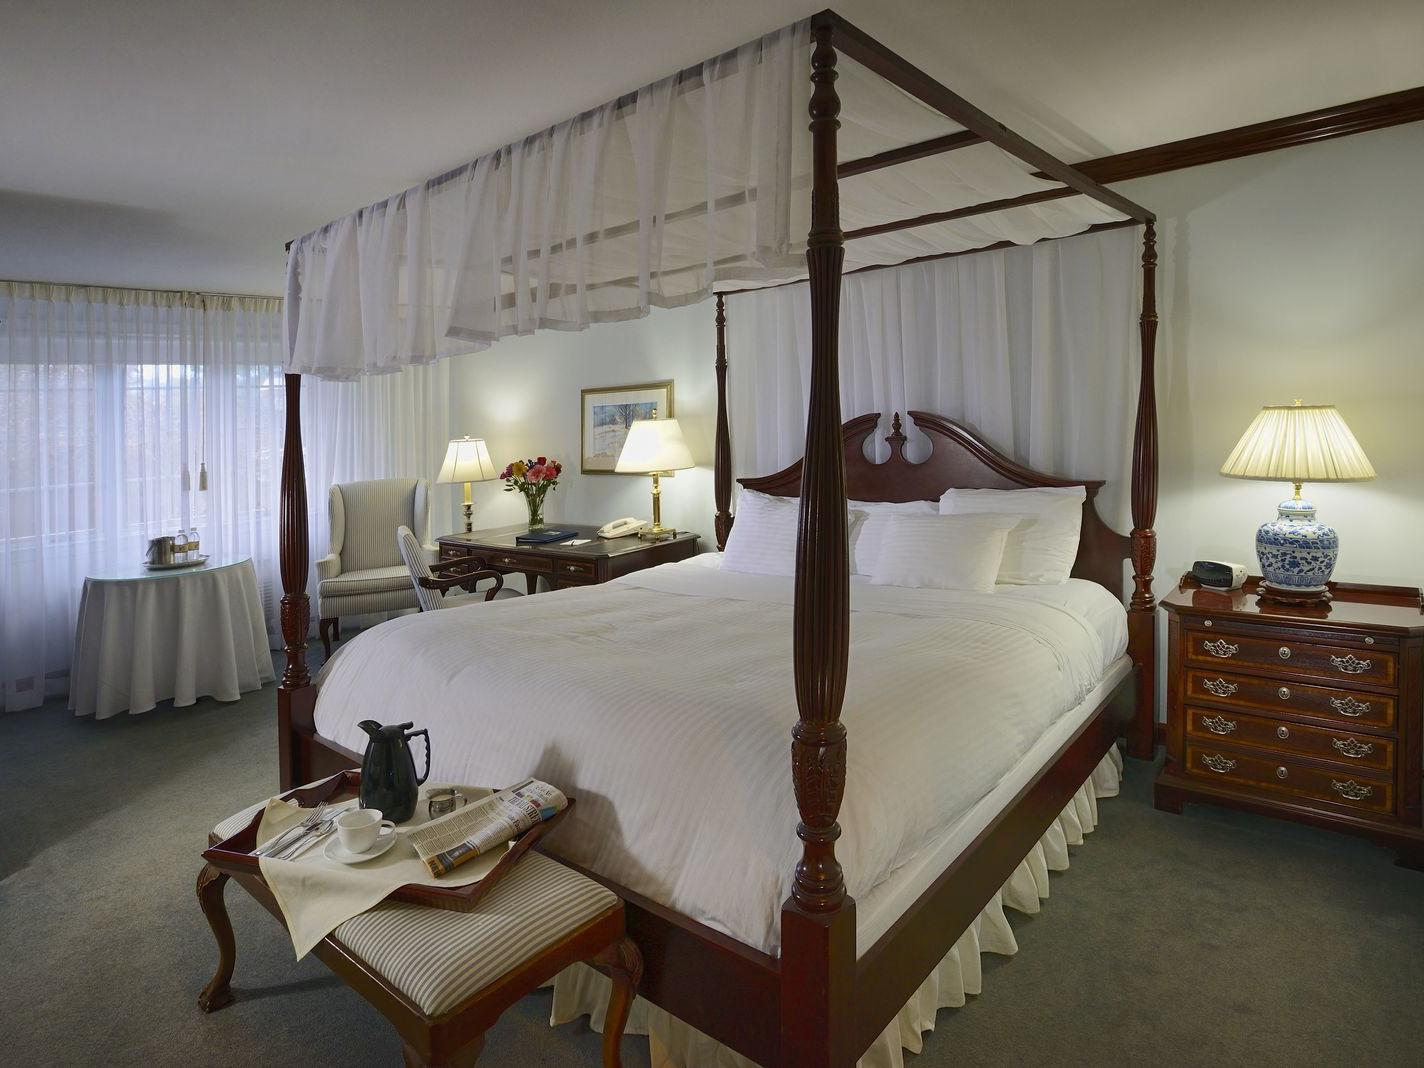 View of Traditional King with king bed at Avon Old Farms Hotel